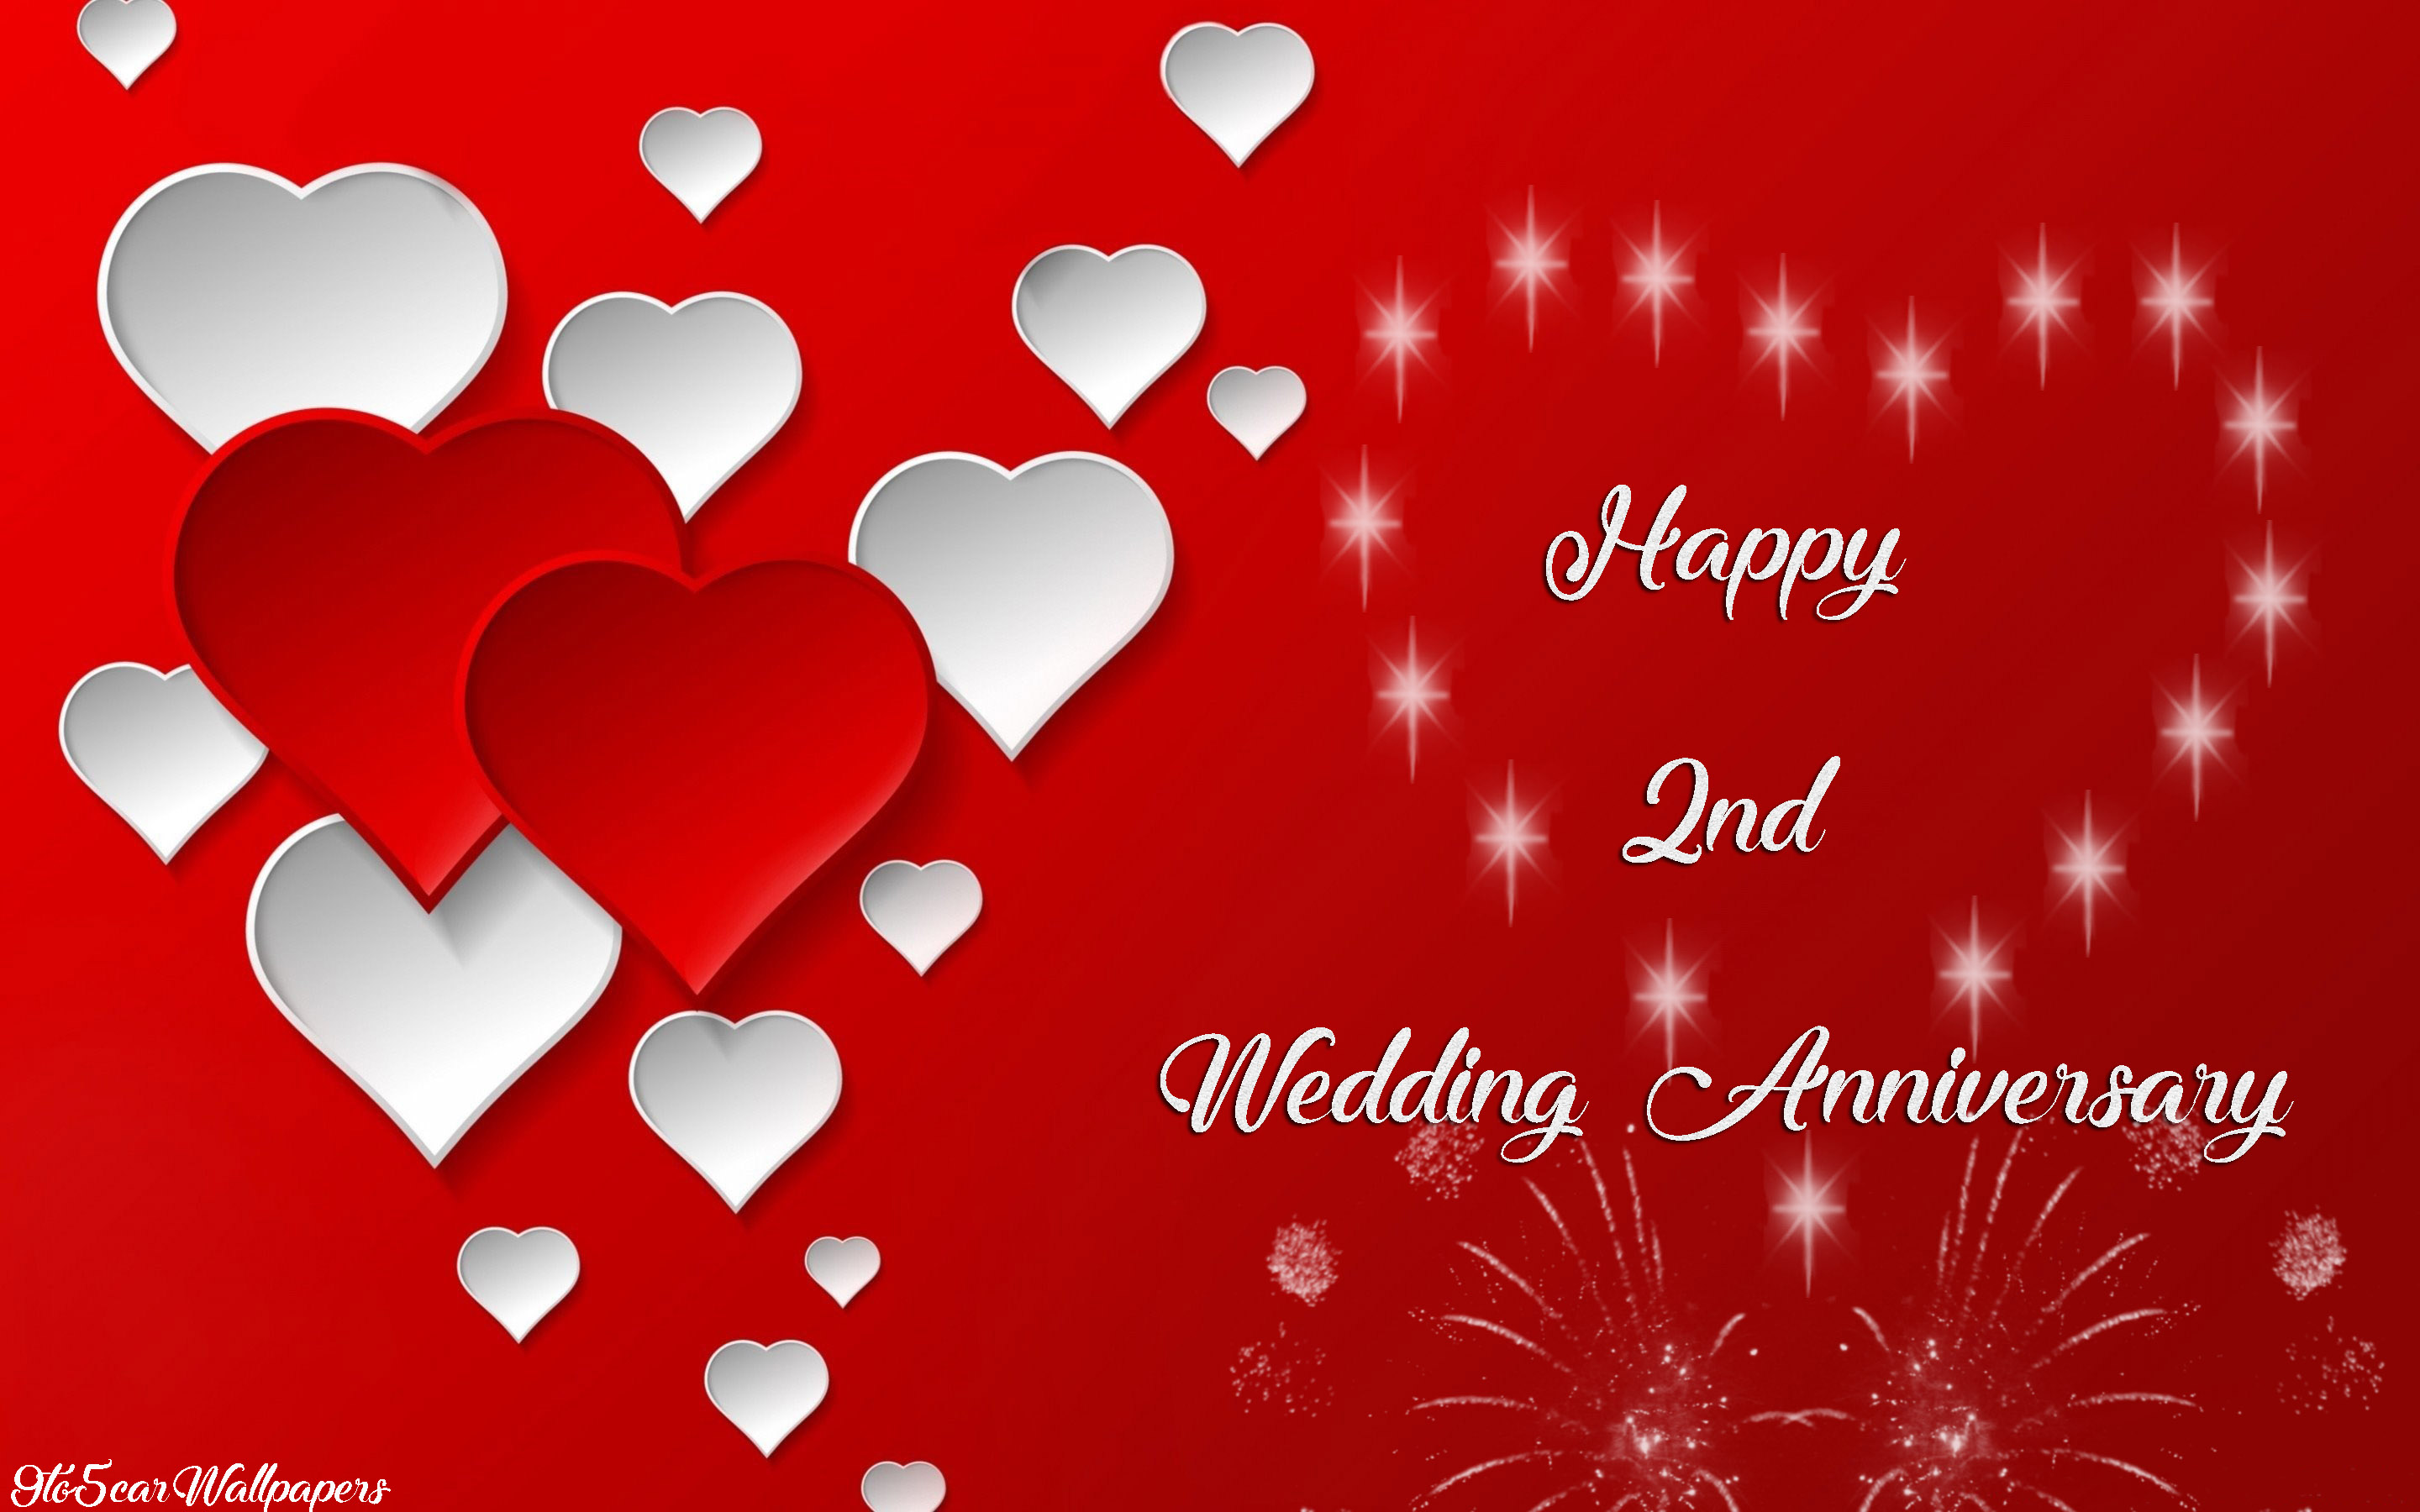 2nd-wedding-anniversary-wishes